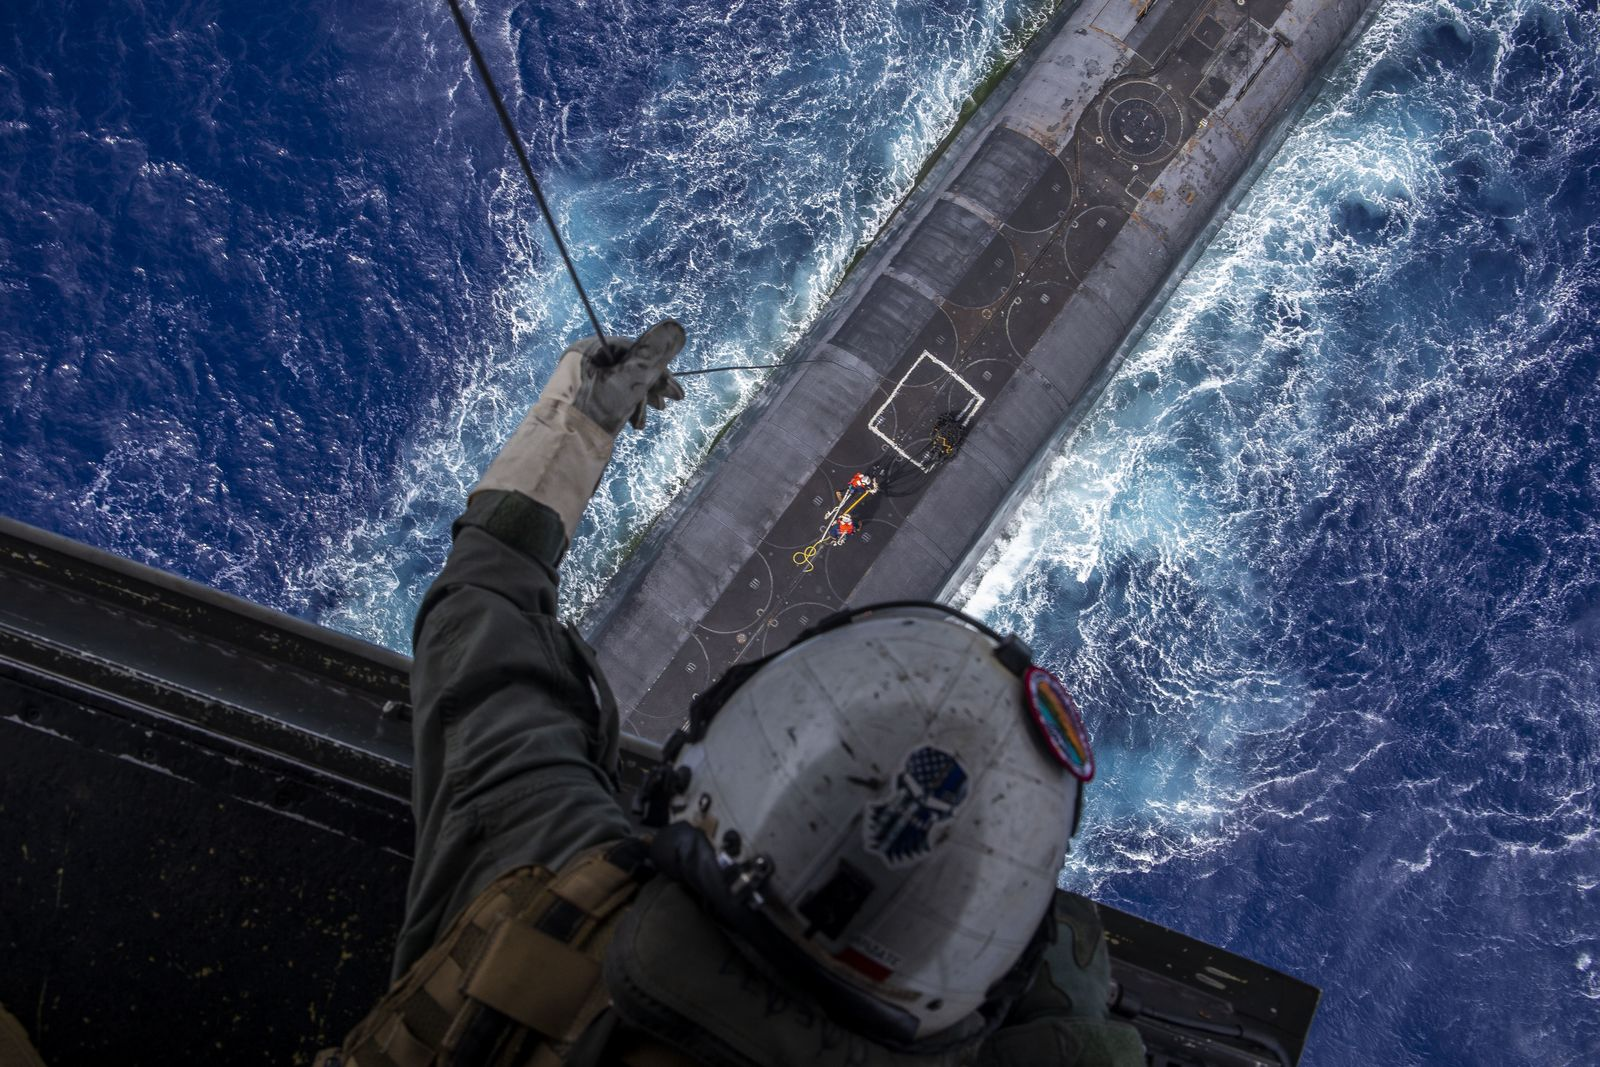 The Best Department of Defense (DoD) Photographs of 2020